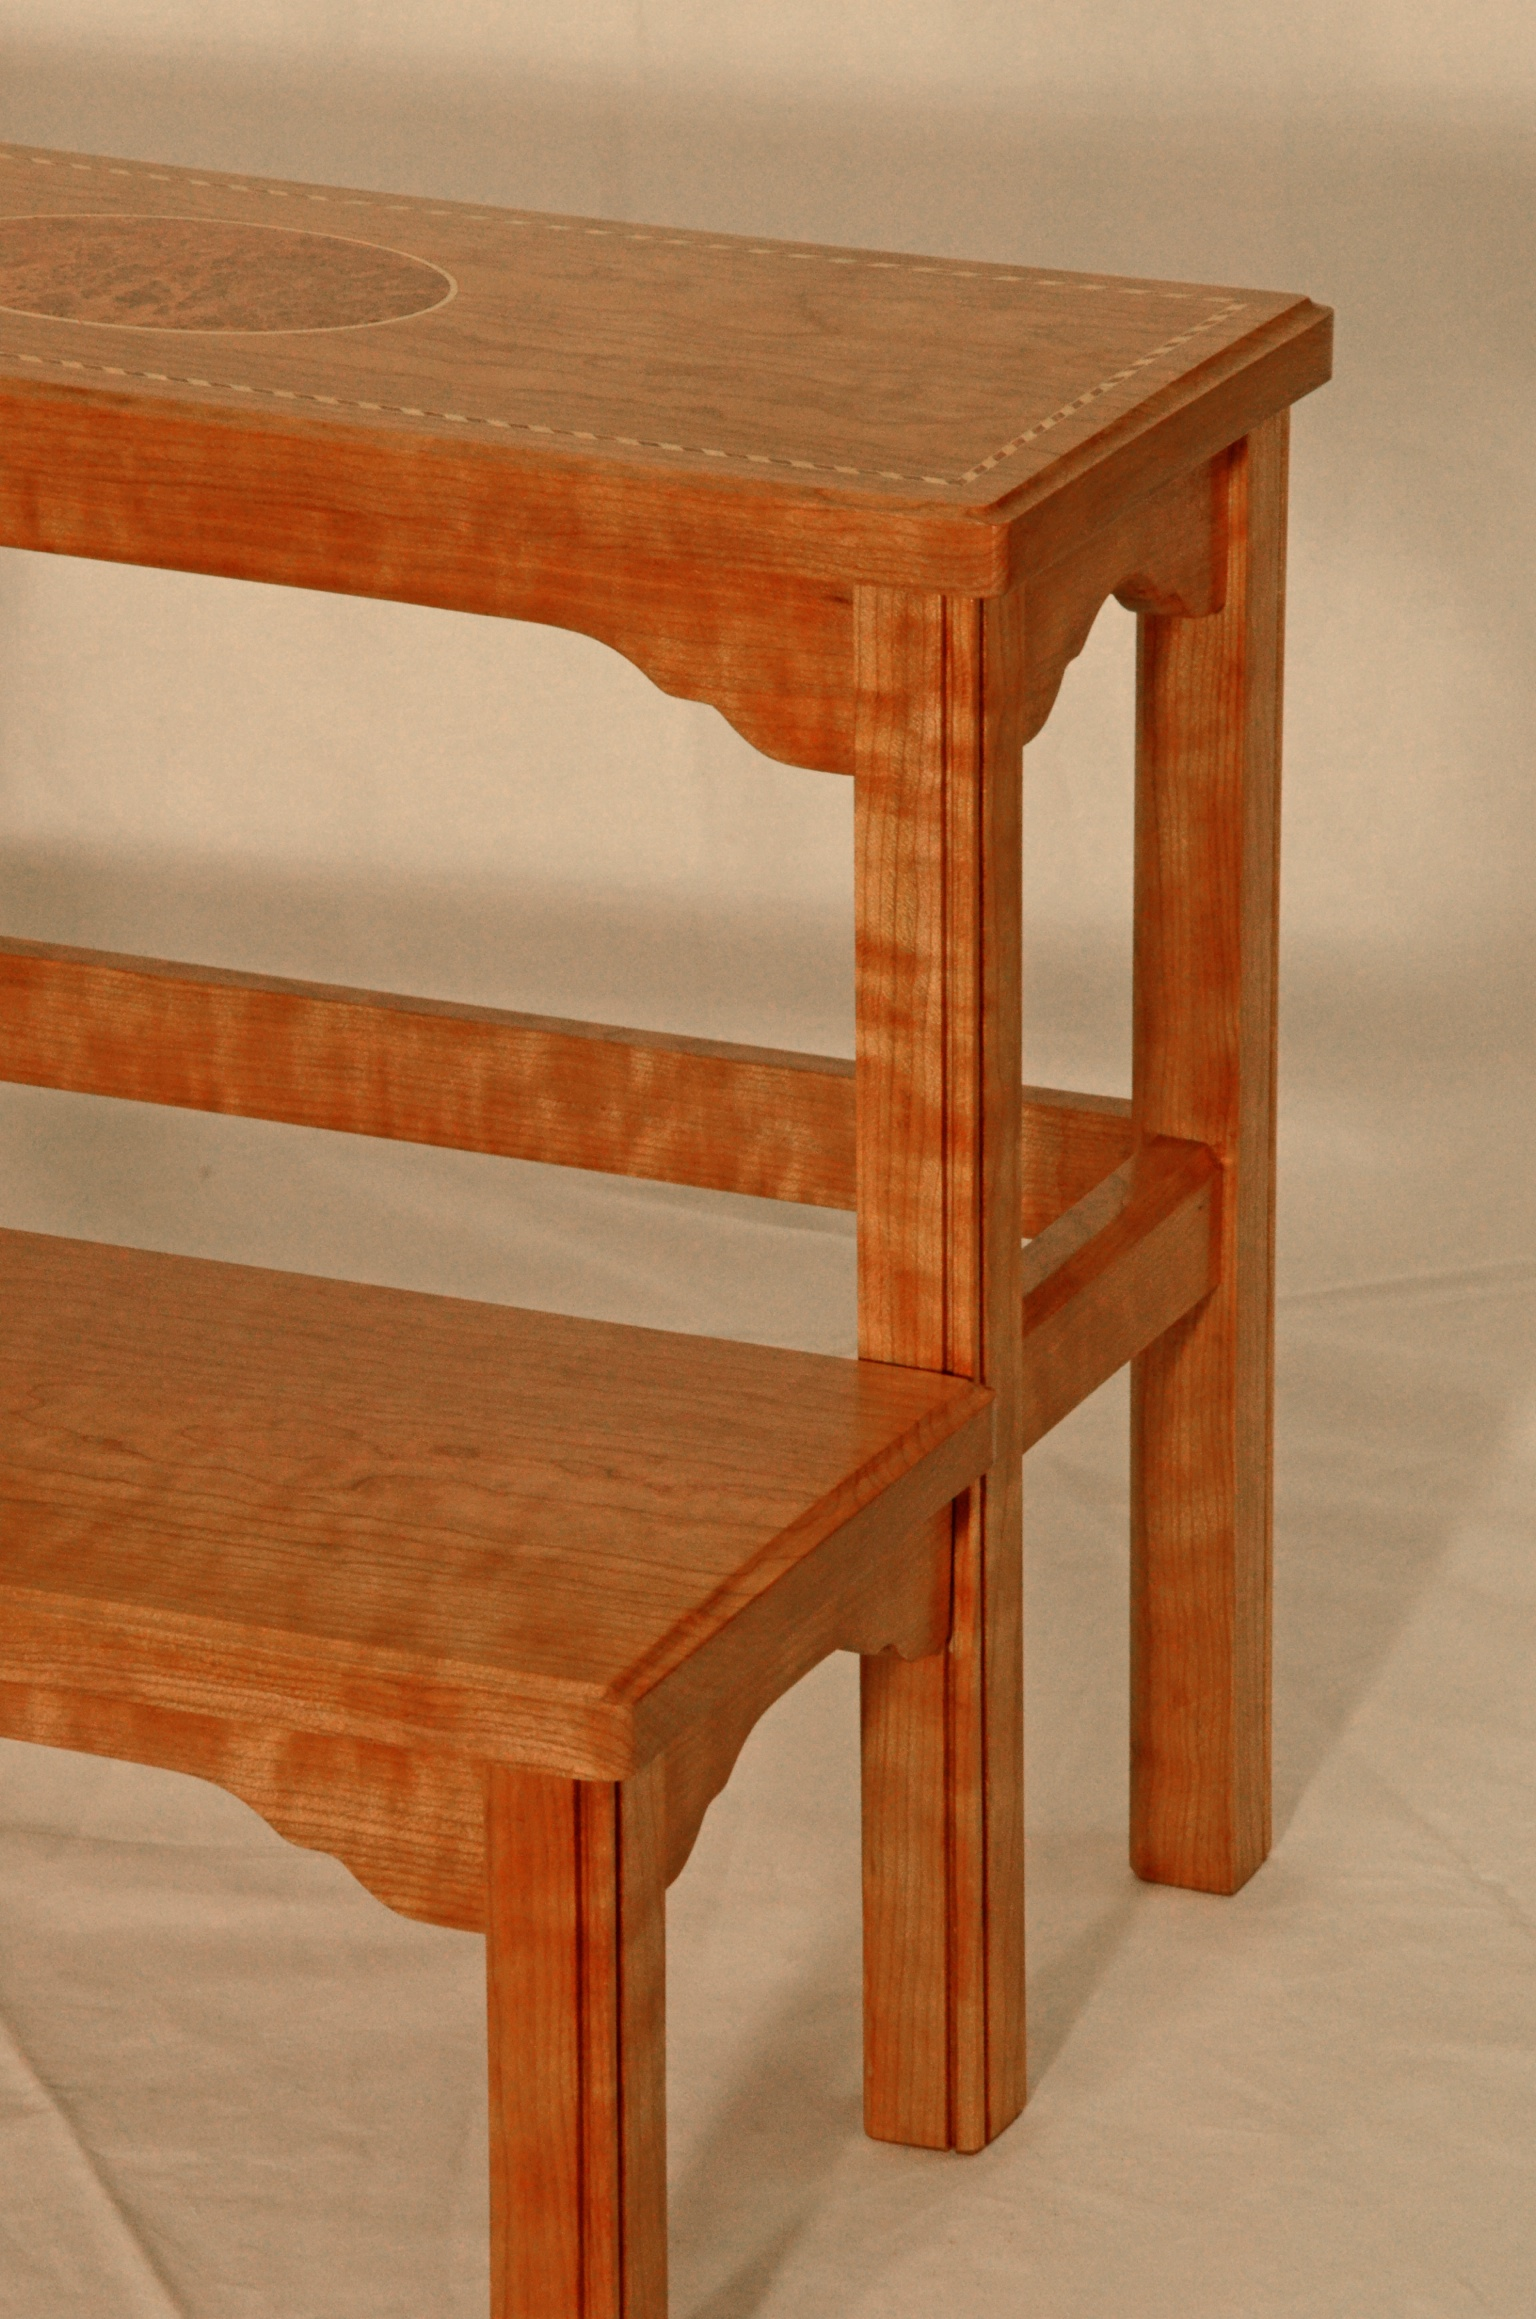 Cherry federal step stool silverpearl woodworking for Cherry wood step stool bedroom